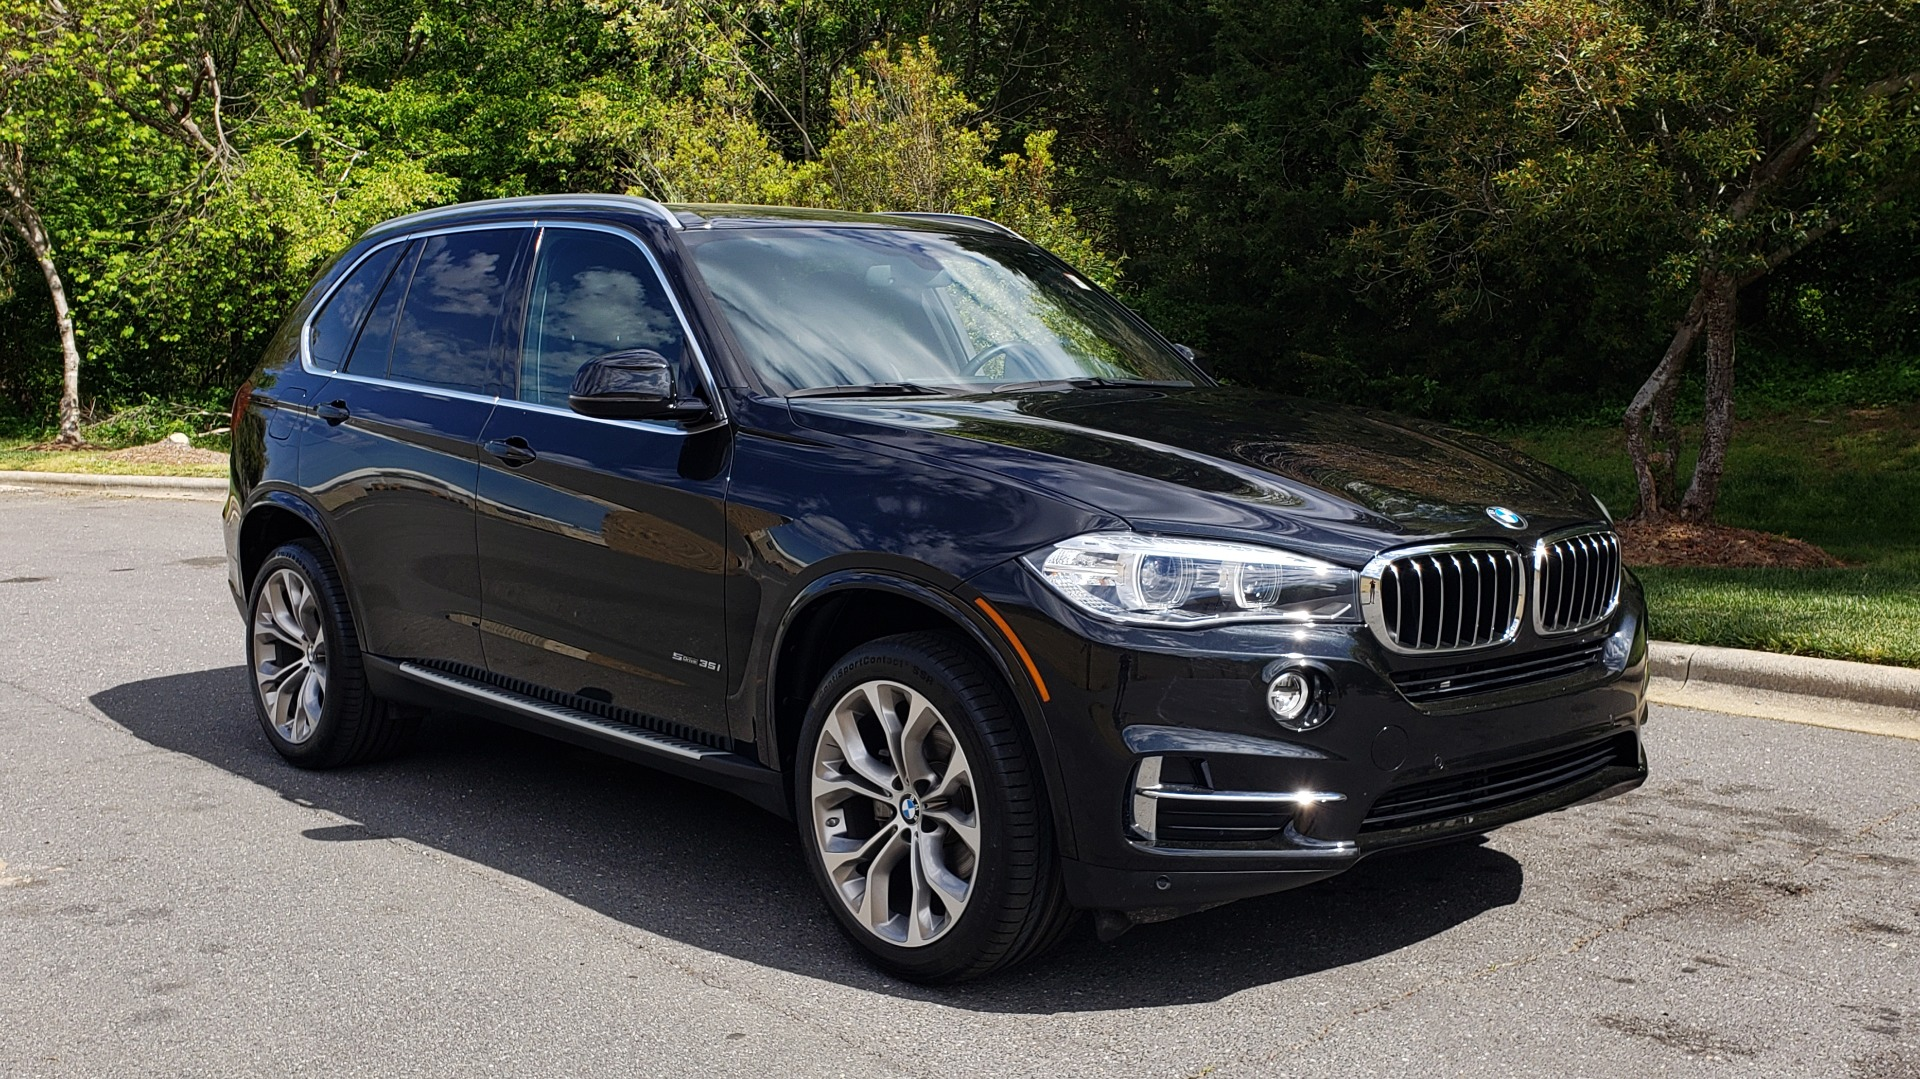 Used 2017 BMW X5 SDRIVE35I LUXURY / DRVR ASST / NAV / SUNROOF / REARVIEW for sale Sold at Formula Imports in Charlotte NC 28227 4